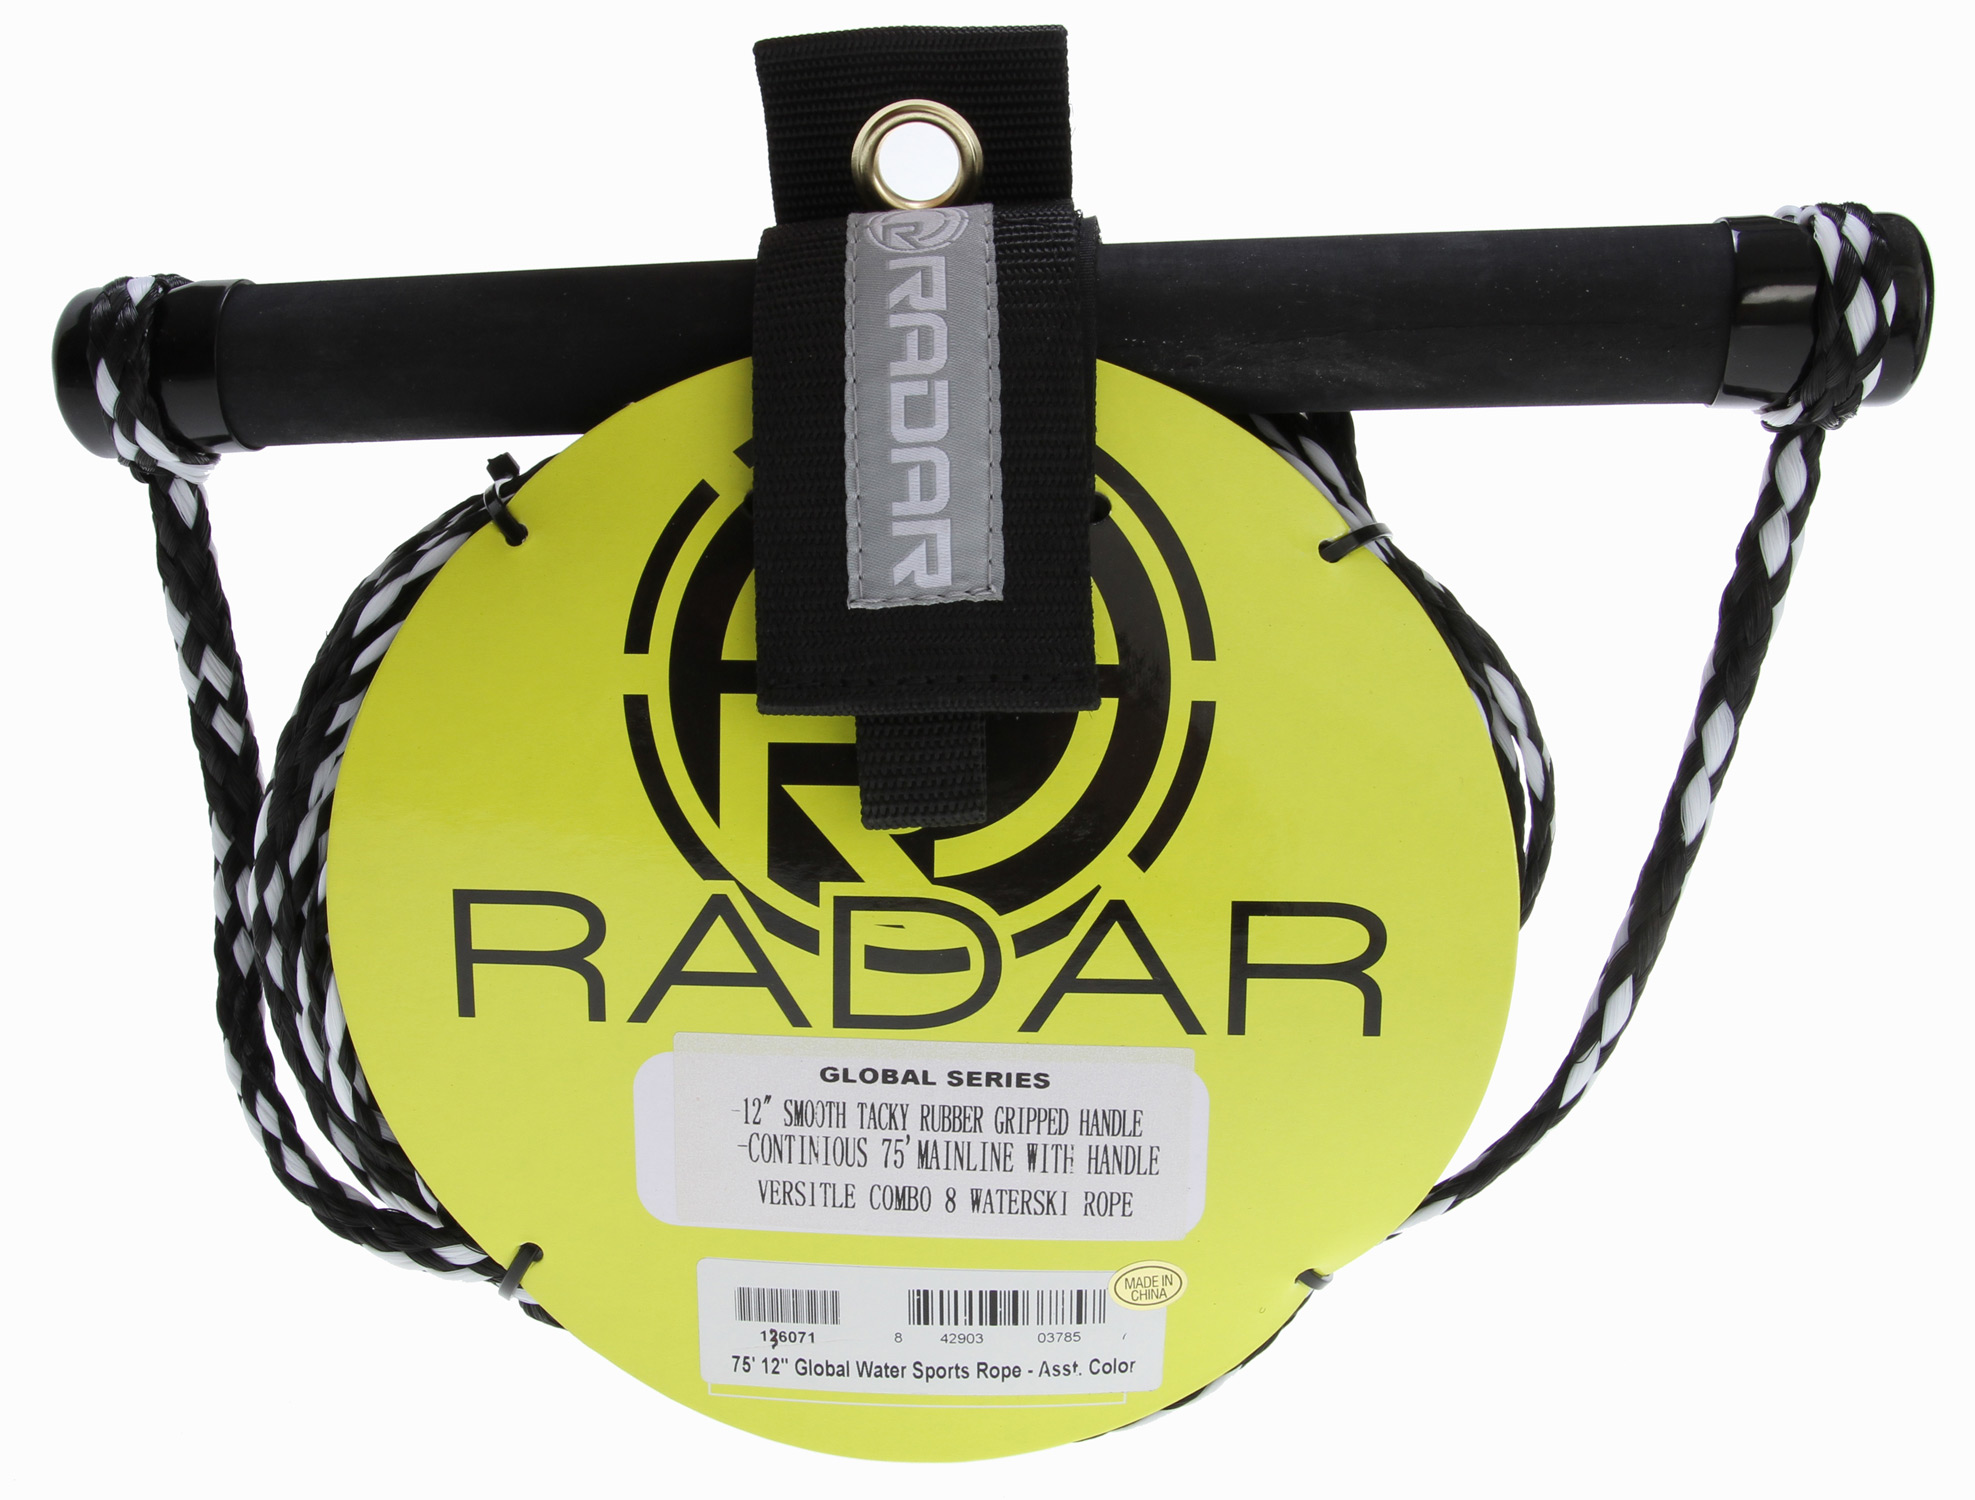 "Wake Key Features of the Radar Global 12"" Handle Watersports Rope Combo 75': 75' Global Water Sports Rope 12"" Smooth tacky rubber gripped handle 70' Mainline Assorted colors - $17.99"